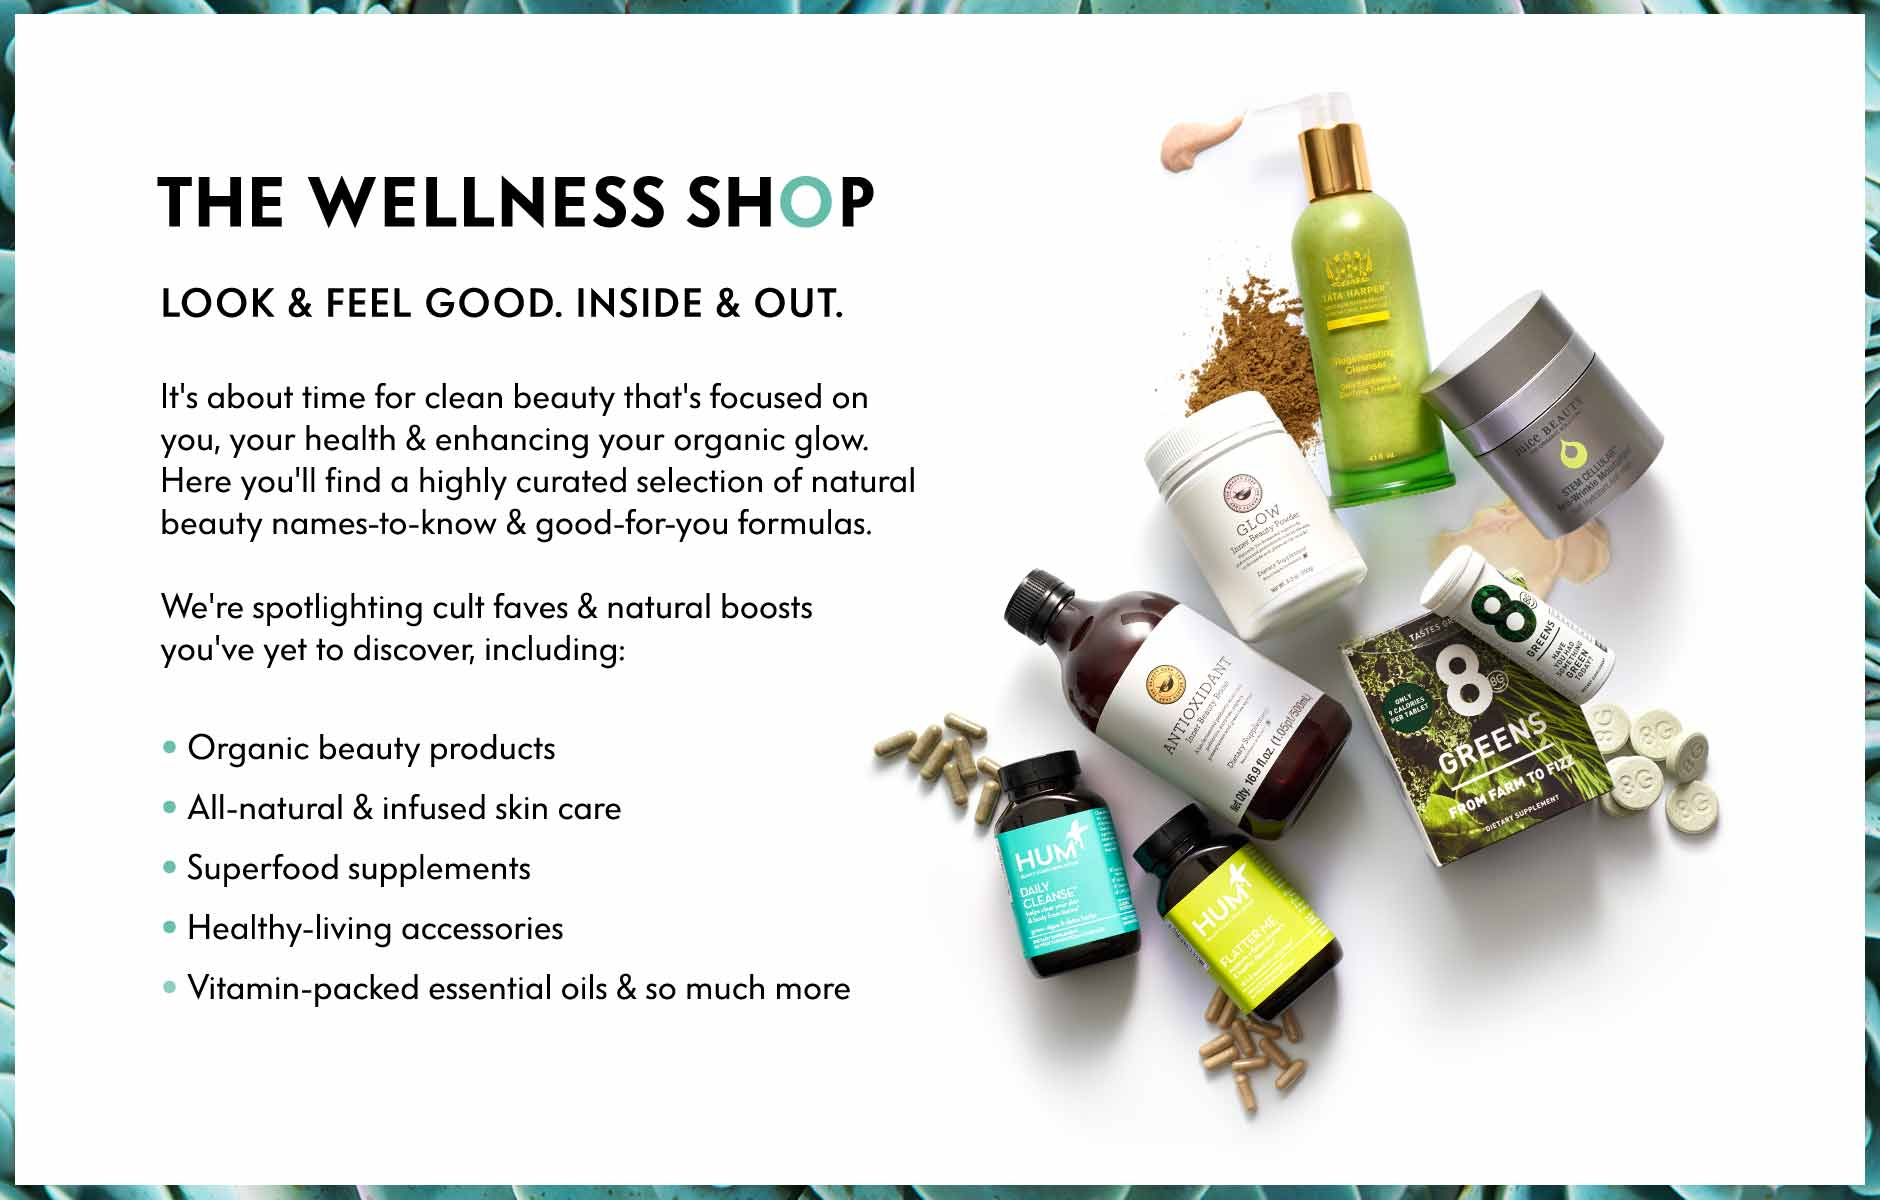 The Wellness Shop - Look & feel good. Inside & out.